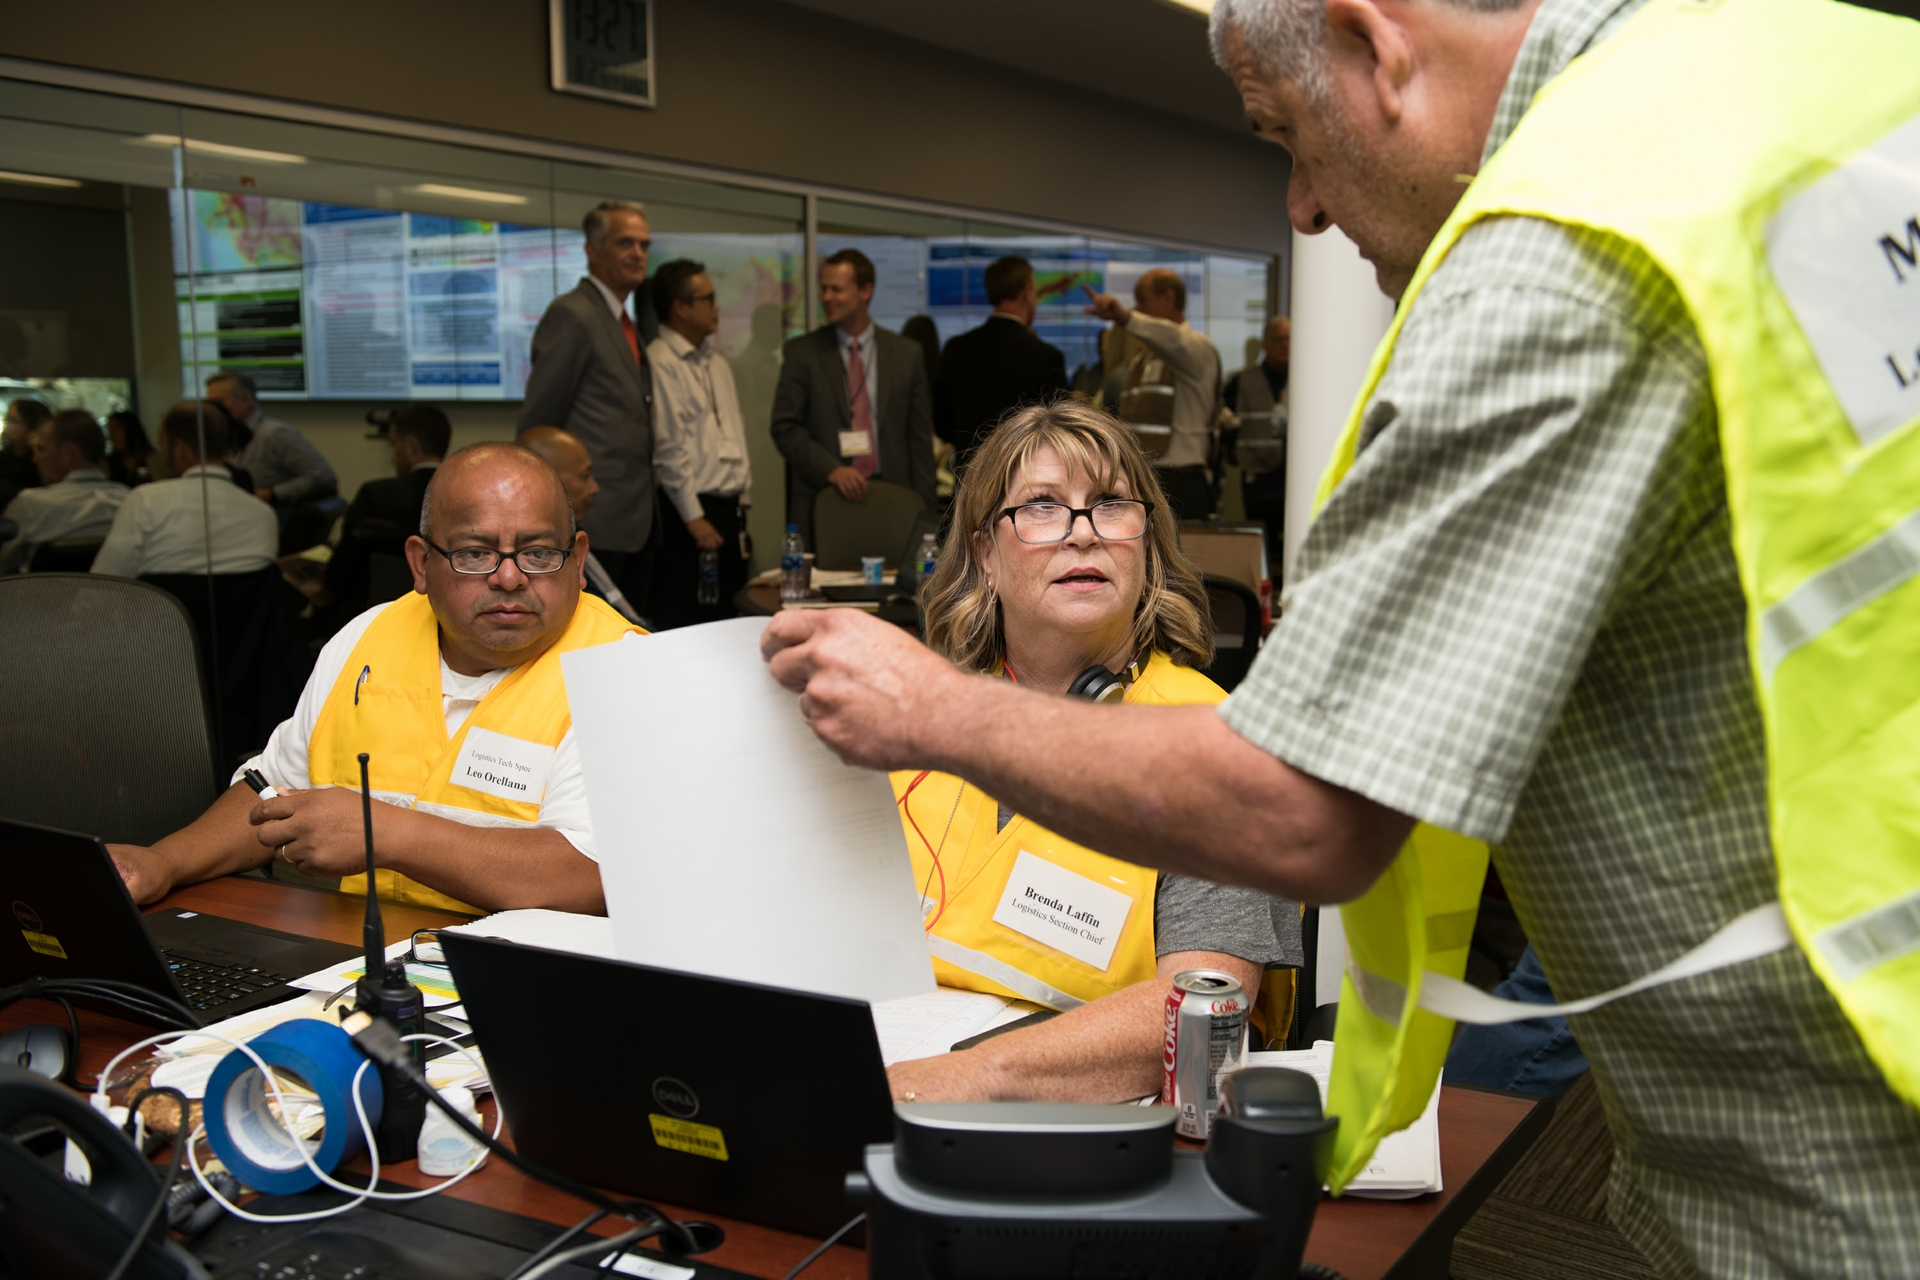 SCE teams work together to respond to simulated scenarios that could impact the company following a devastating 7.8 earthquake.